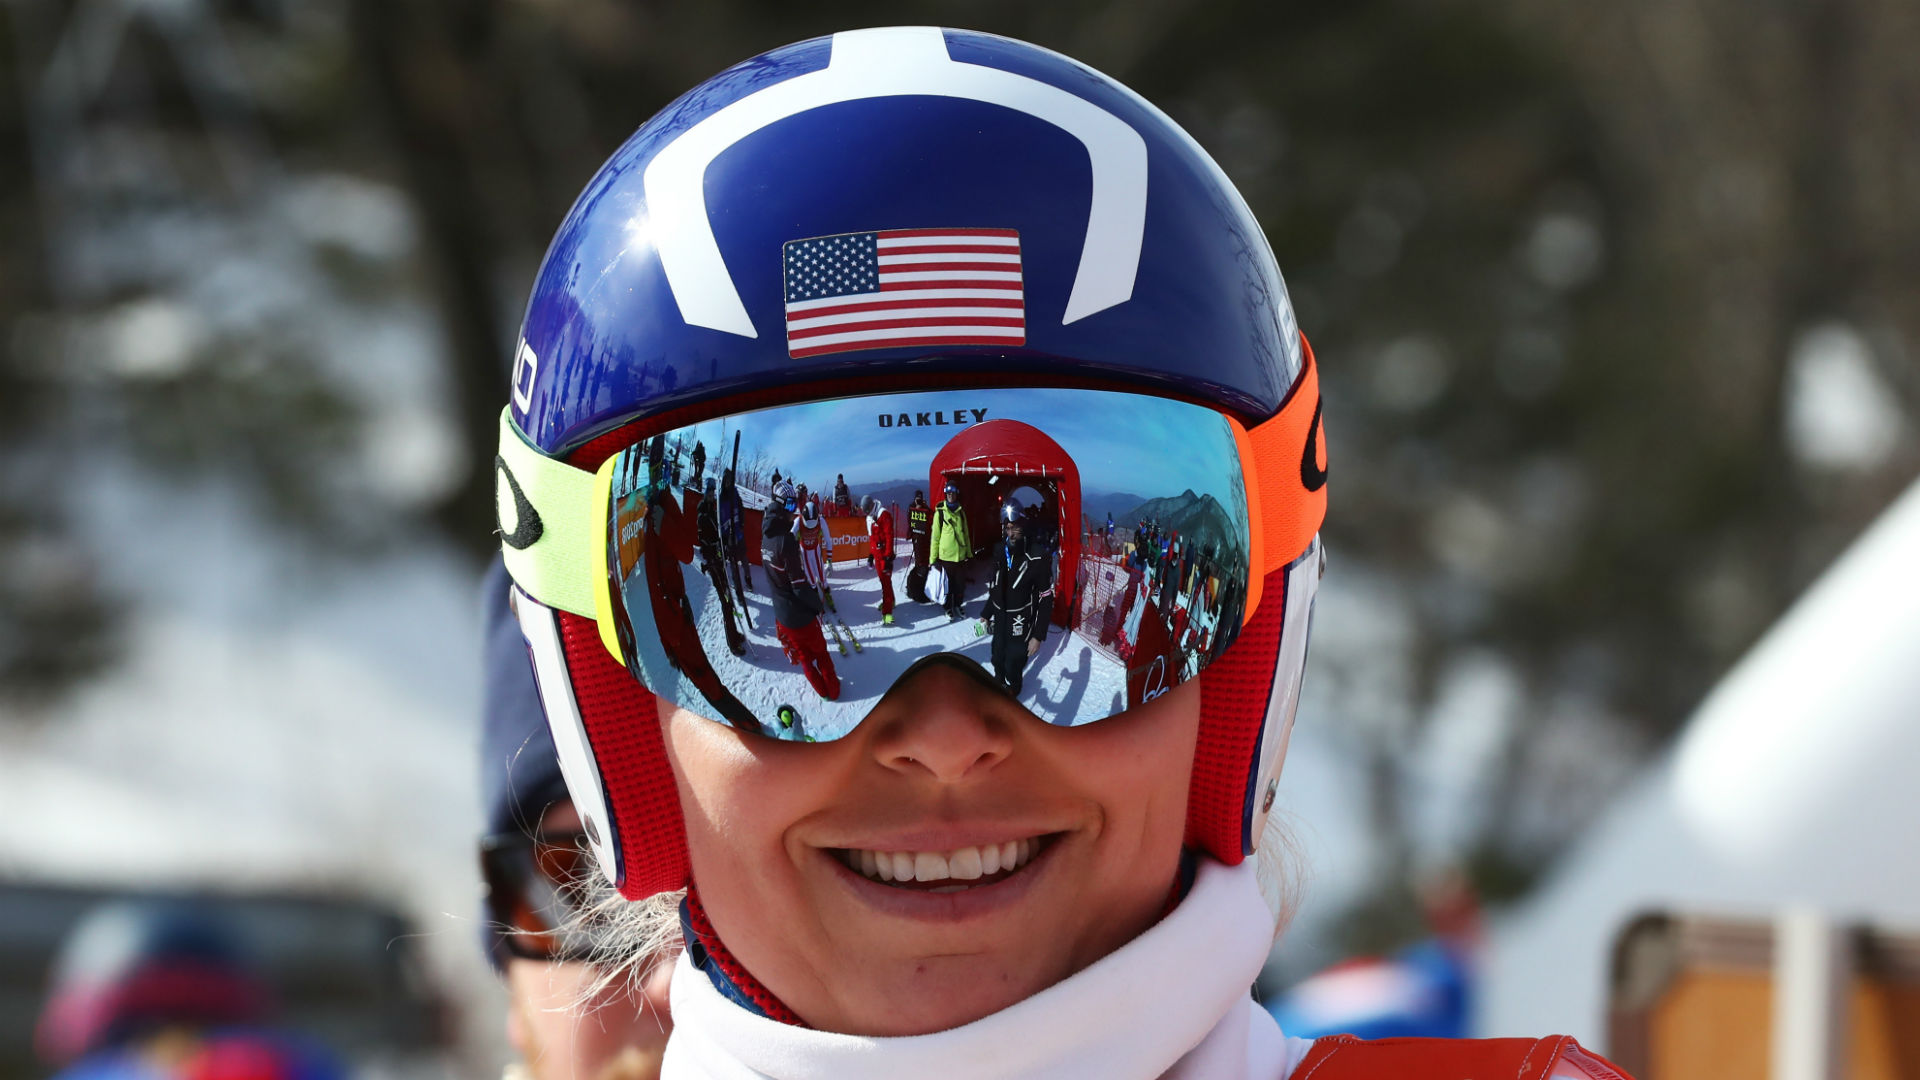 Lindsey Vonn visibly frustrated after not medaling in Super-G